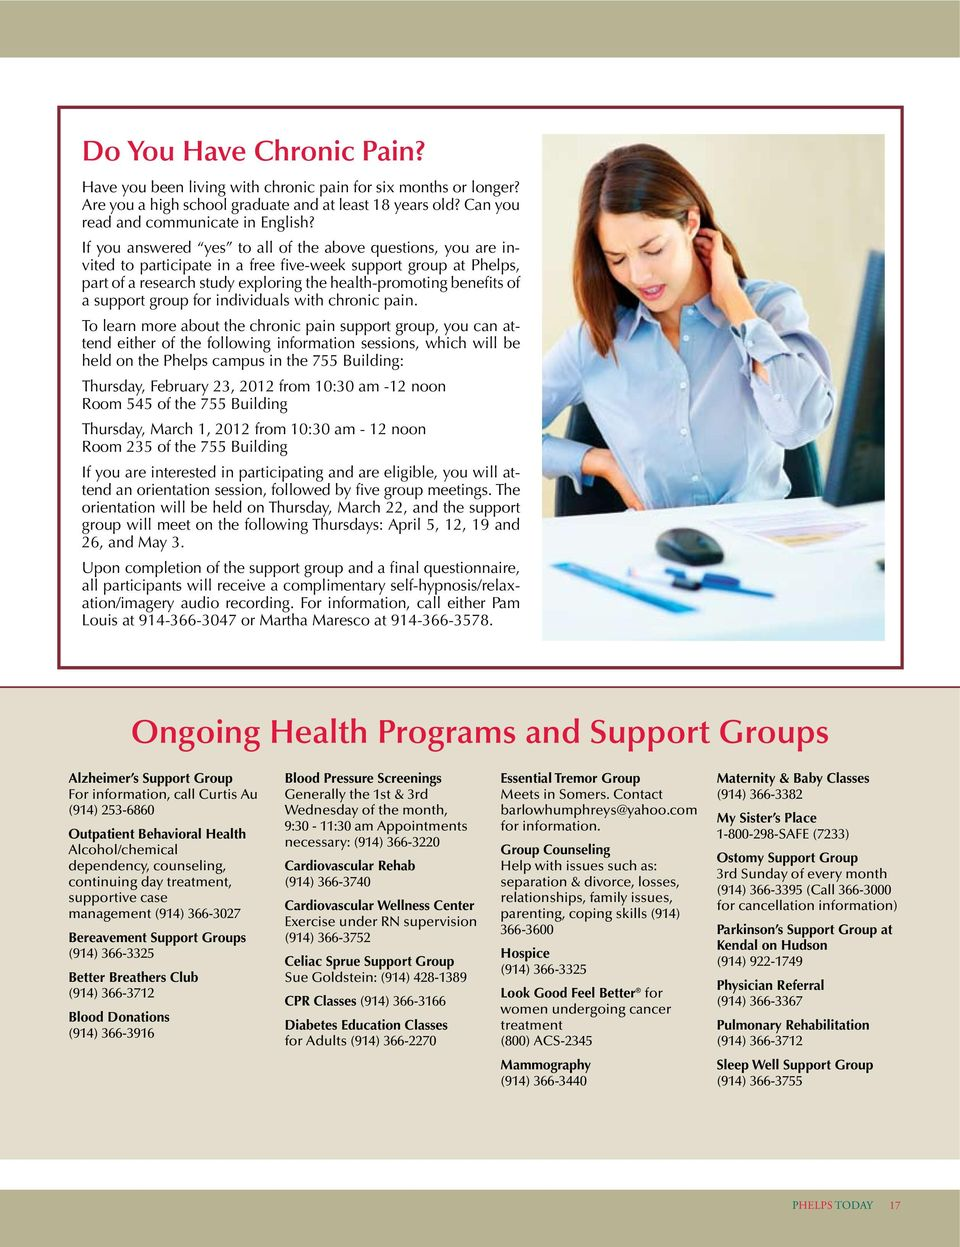 support group for individuals with chronic pain.